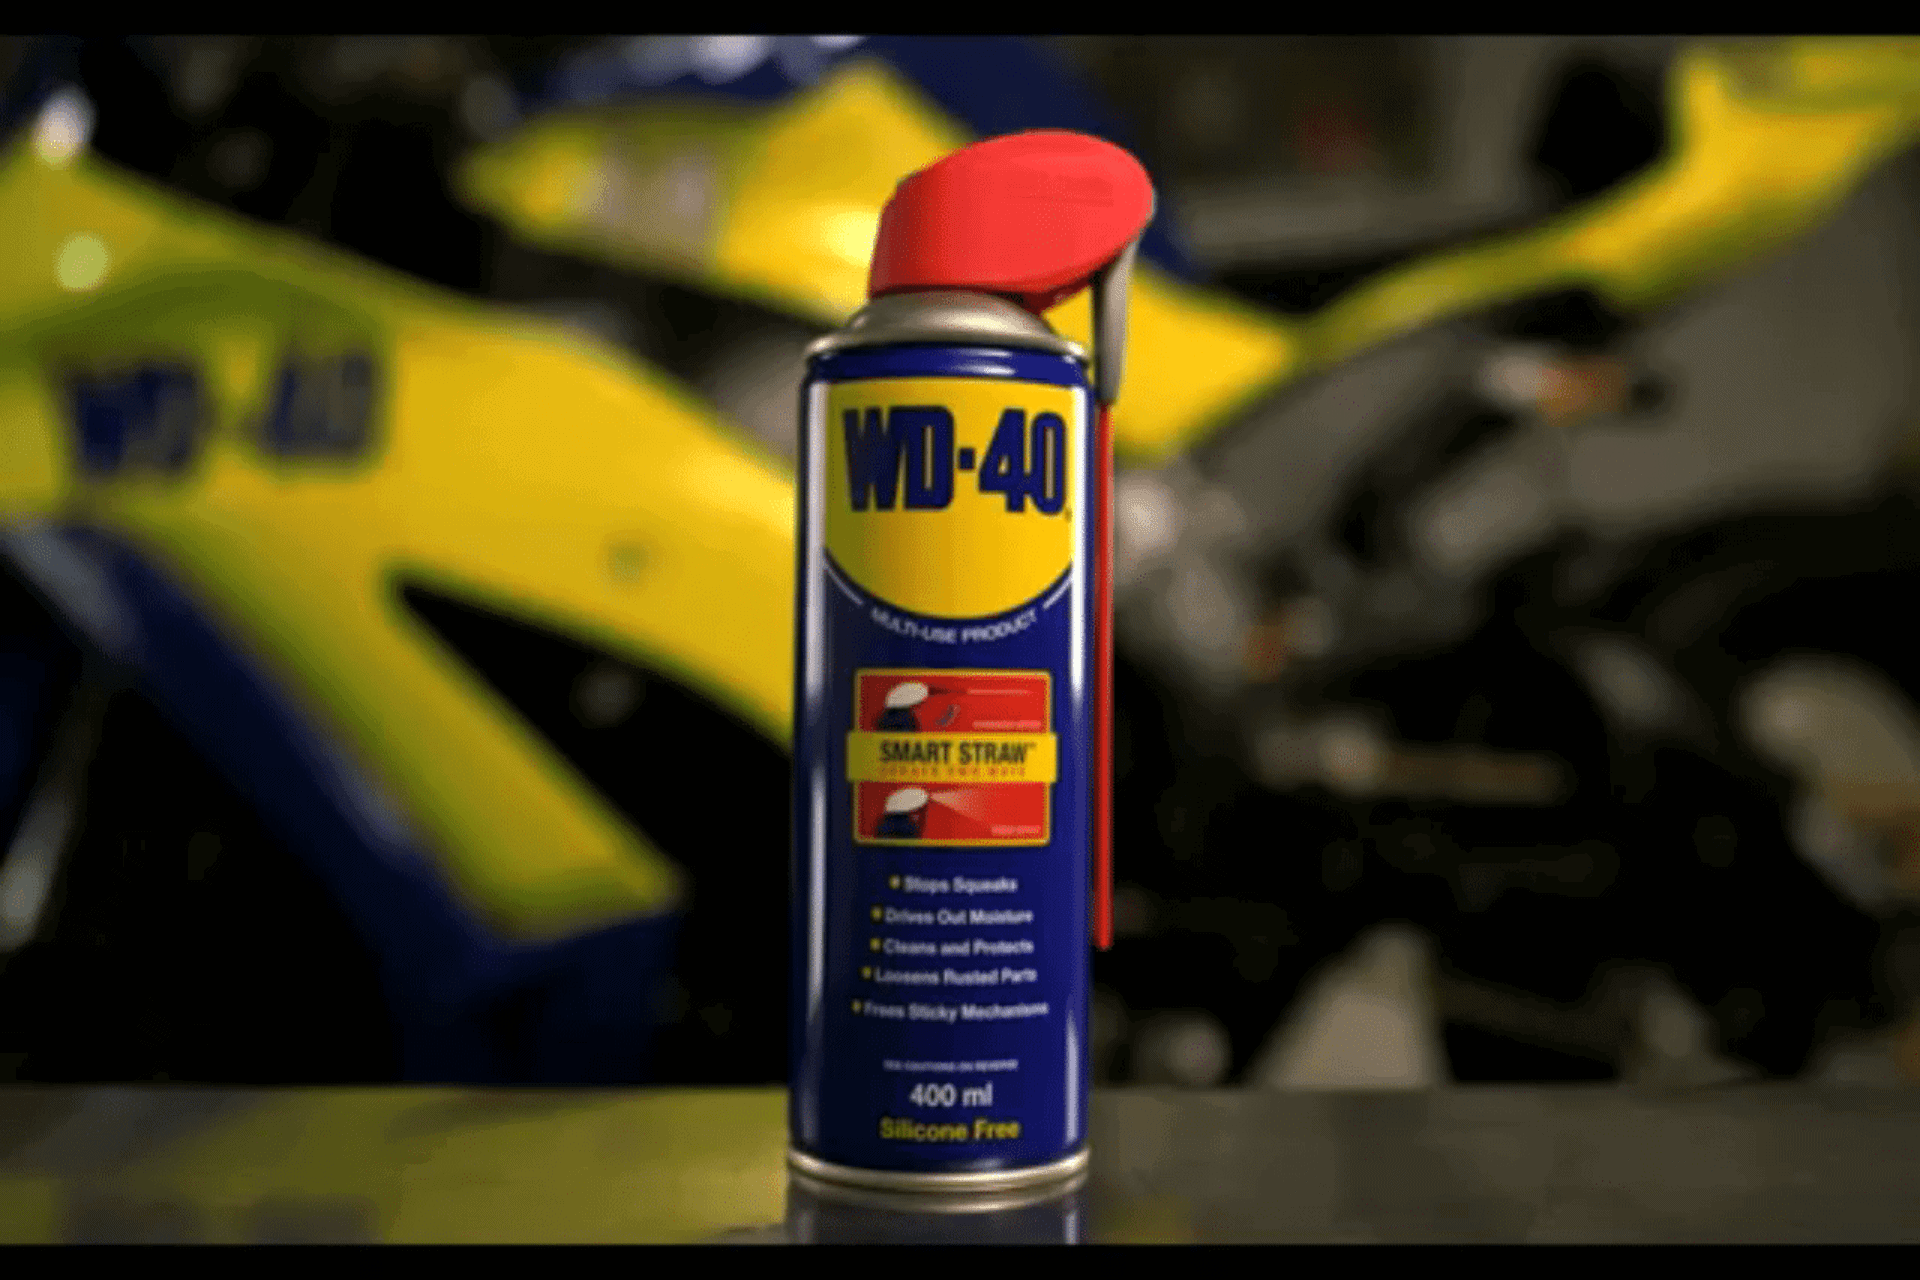 wd40 multi purpose